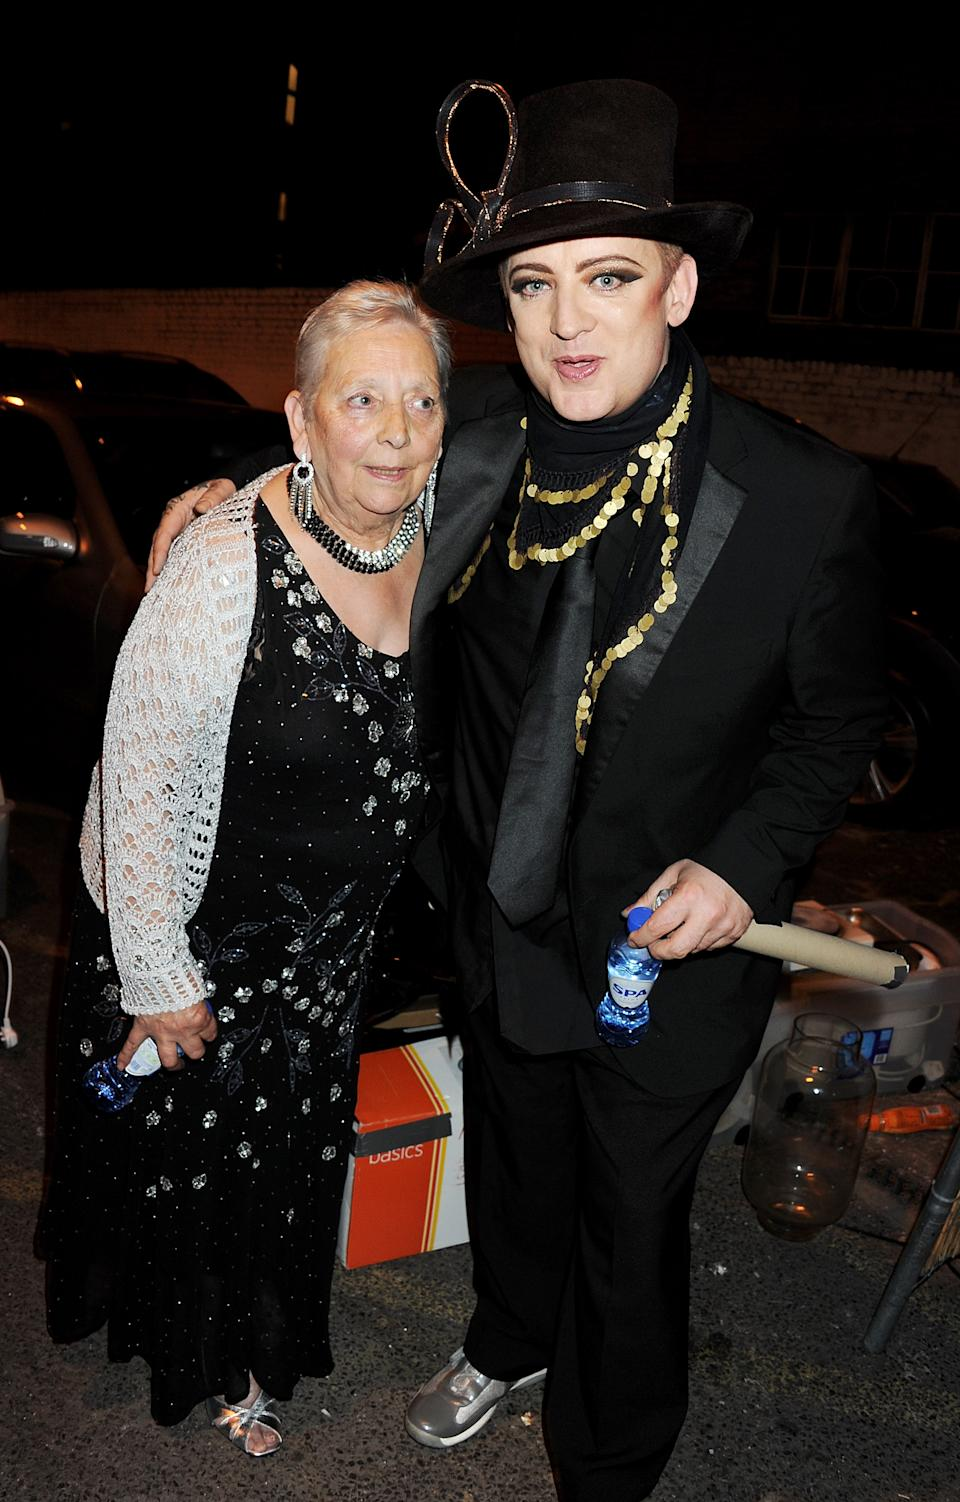 LONDON, ENGLAND - JUNE 14:  (EMBARGOED FOR PUBLICATION IN UK TABLOID NEWSPAPERS UNTIL 48 HOURS AFTER CREATE DATE AND TIME. MANDATORY CREDIT PHOTO BY DAVE M. BENETT/GETTY IMAGES REQUIRED)  Boy George (R) and mother Dinah O'Dowd attend Boy George's 50th Birthday celebration on June 14, 2011 in London, England.  (Photo by Dave M. Benett/Getty Images)